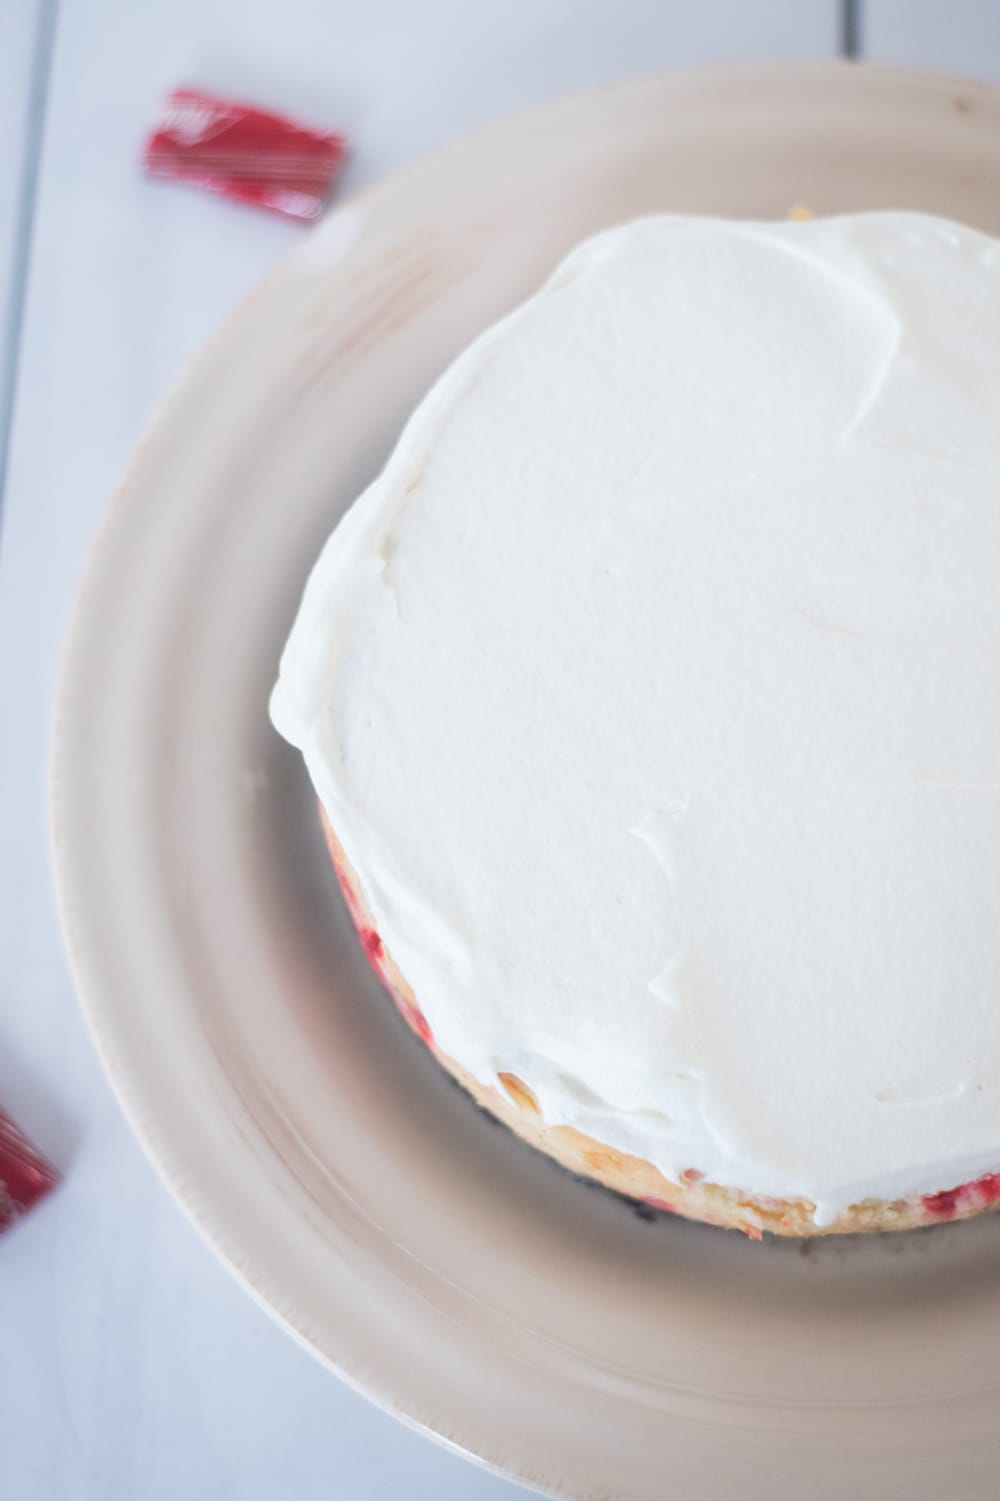 A piece of cake on a plate, with icing